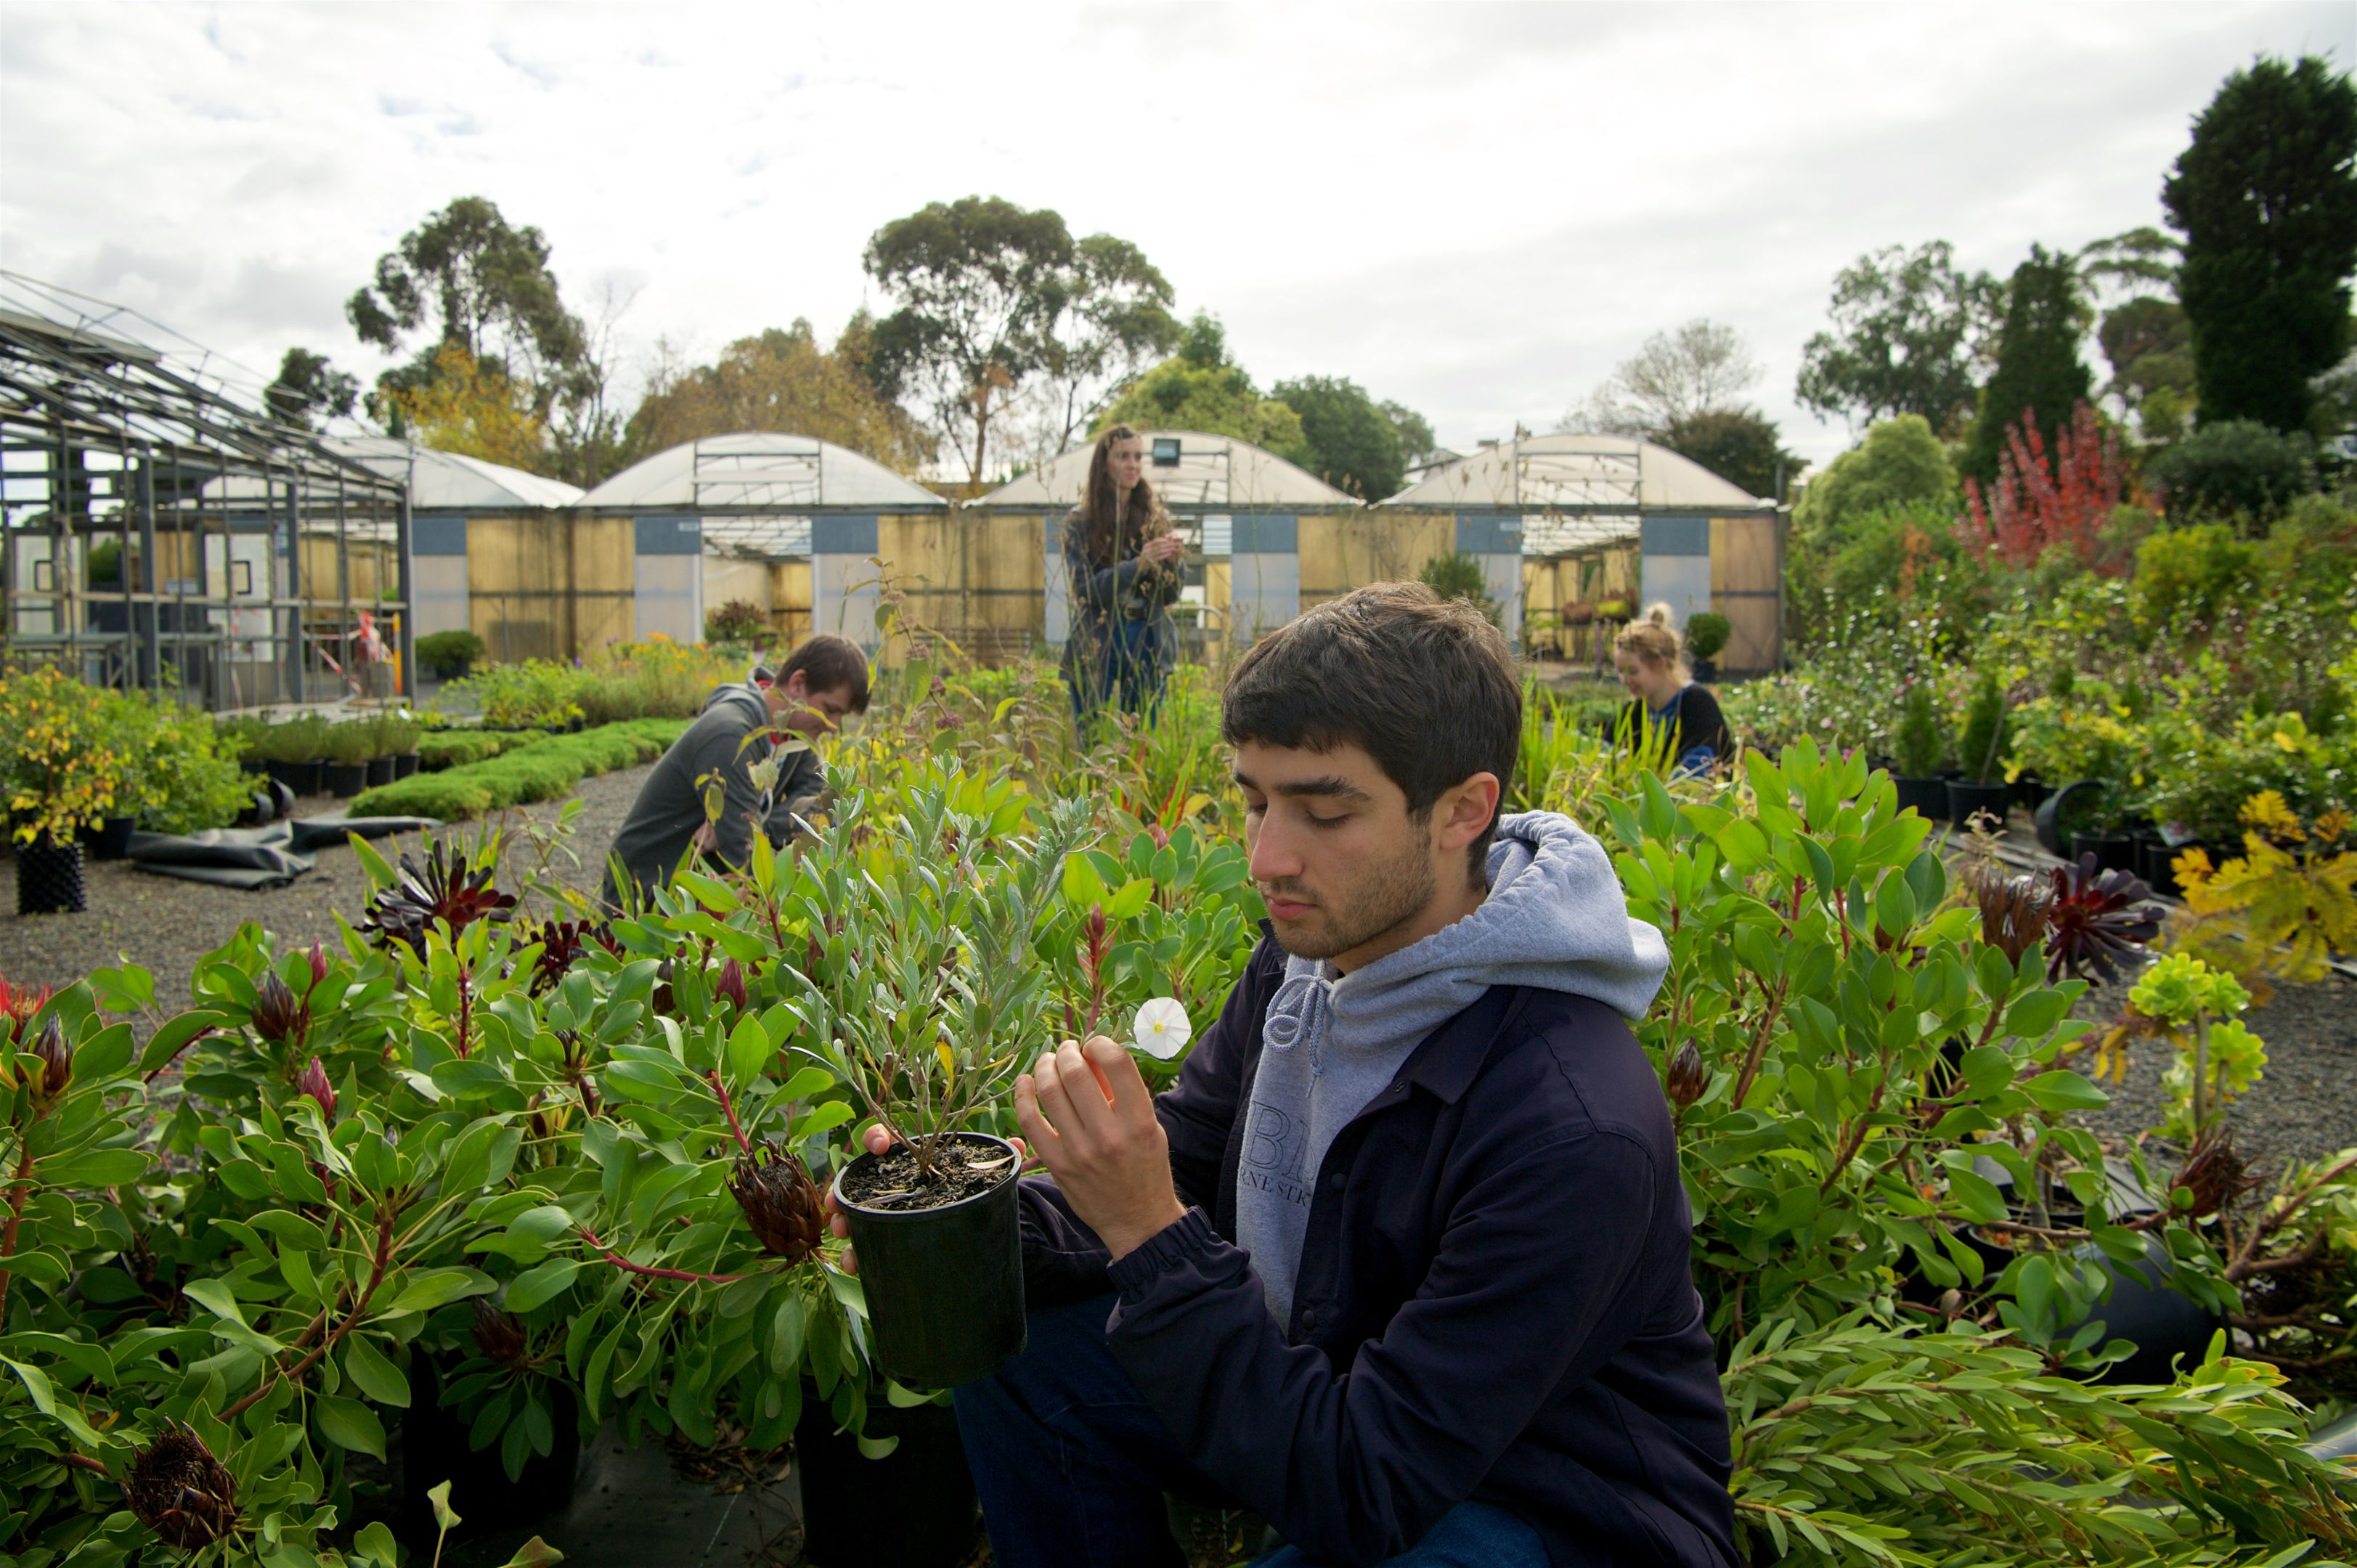 Young man holds a pot and examines a flower in a horticulture setting